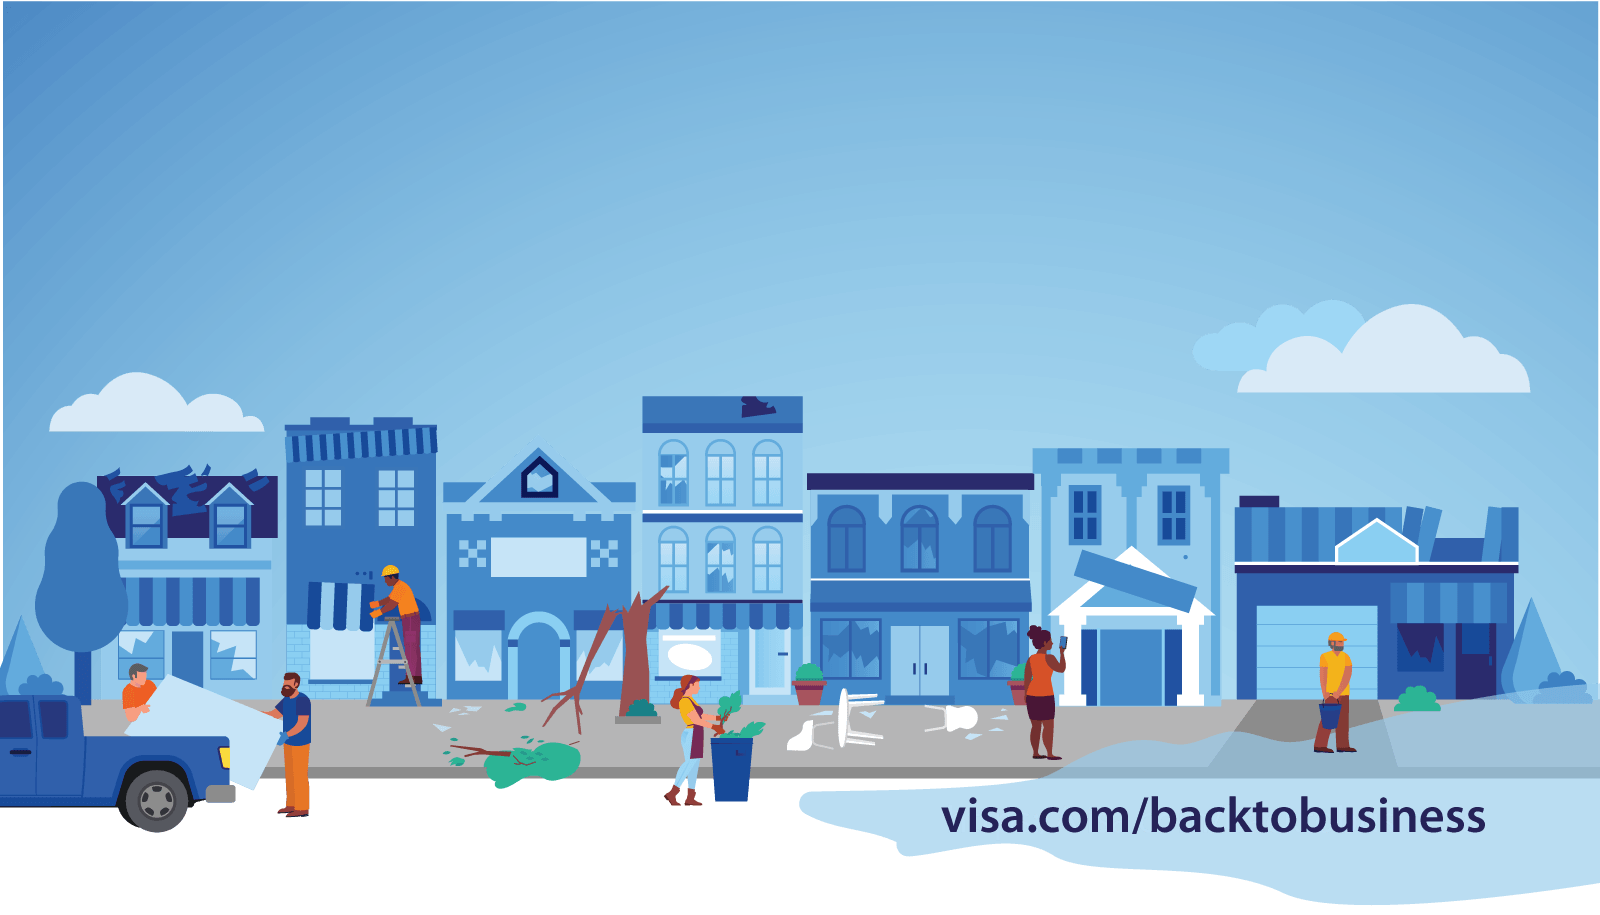 visa back to business infographic